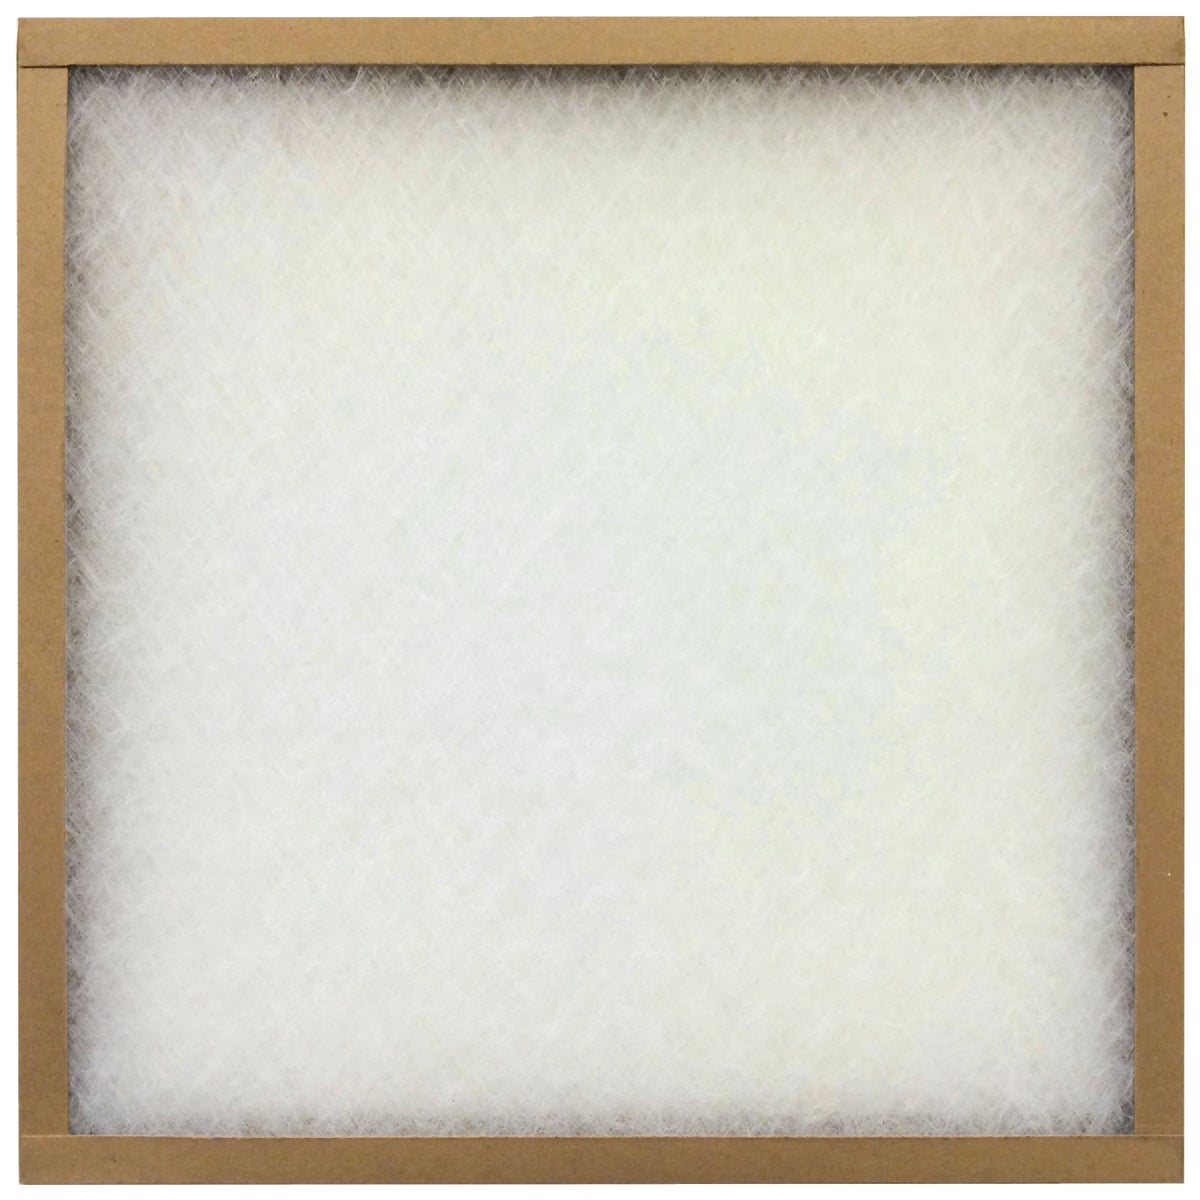 10X10X1 FBRGL AIR FILTER - 10055.011010 by Flanders Corp